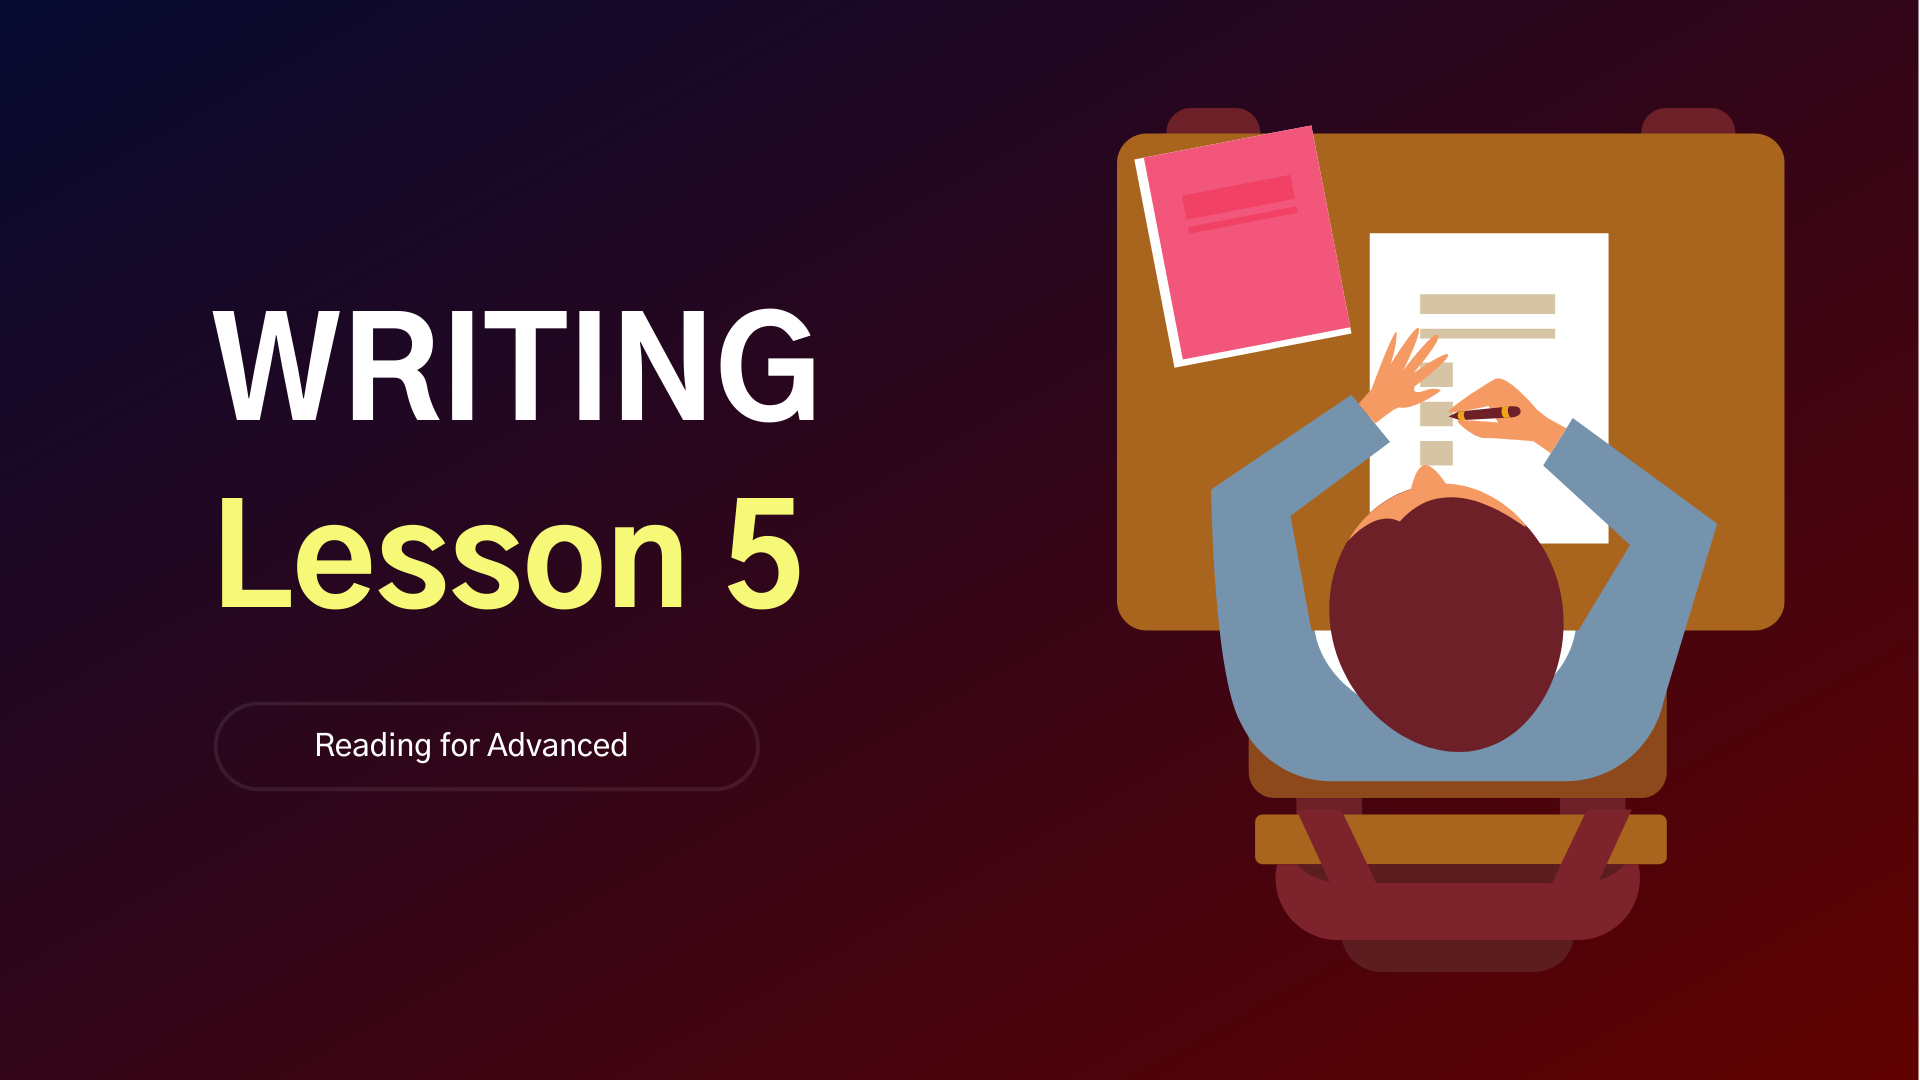 Lesson 5 - Writing for Advanced